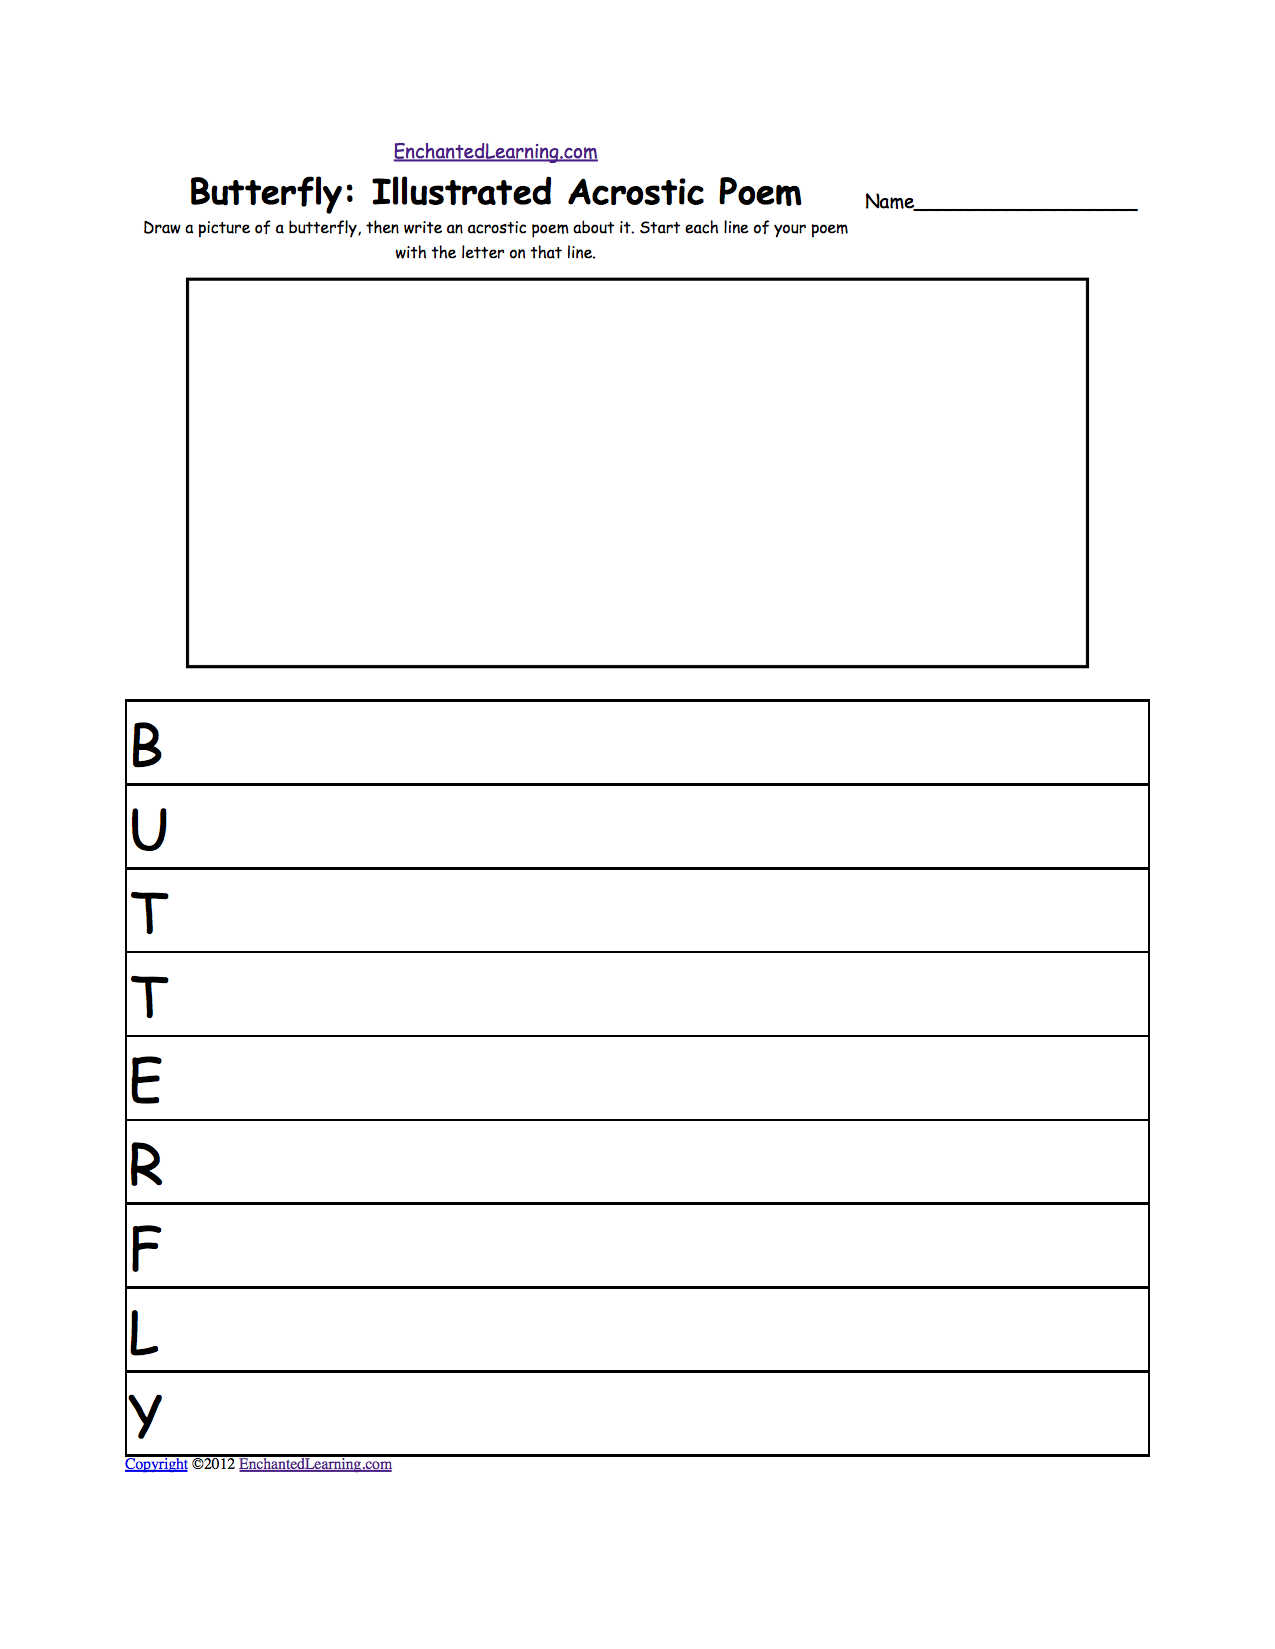 Printables Monarch Butterfly Worksheets butterflies at enchantedlearning com